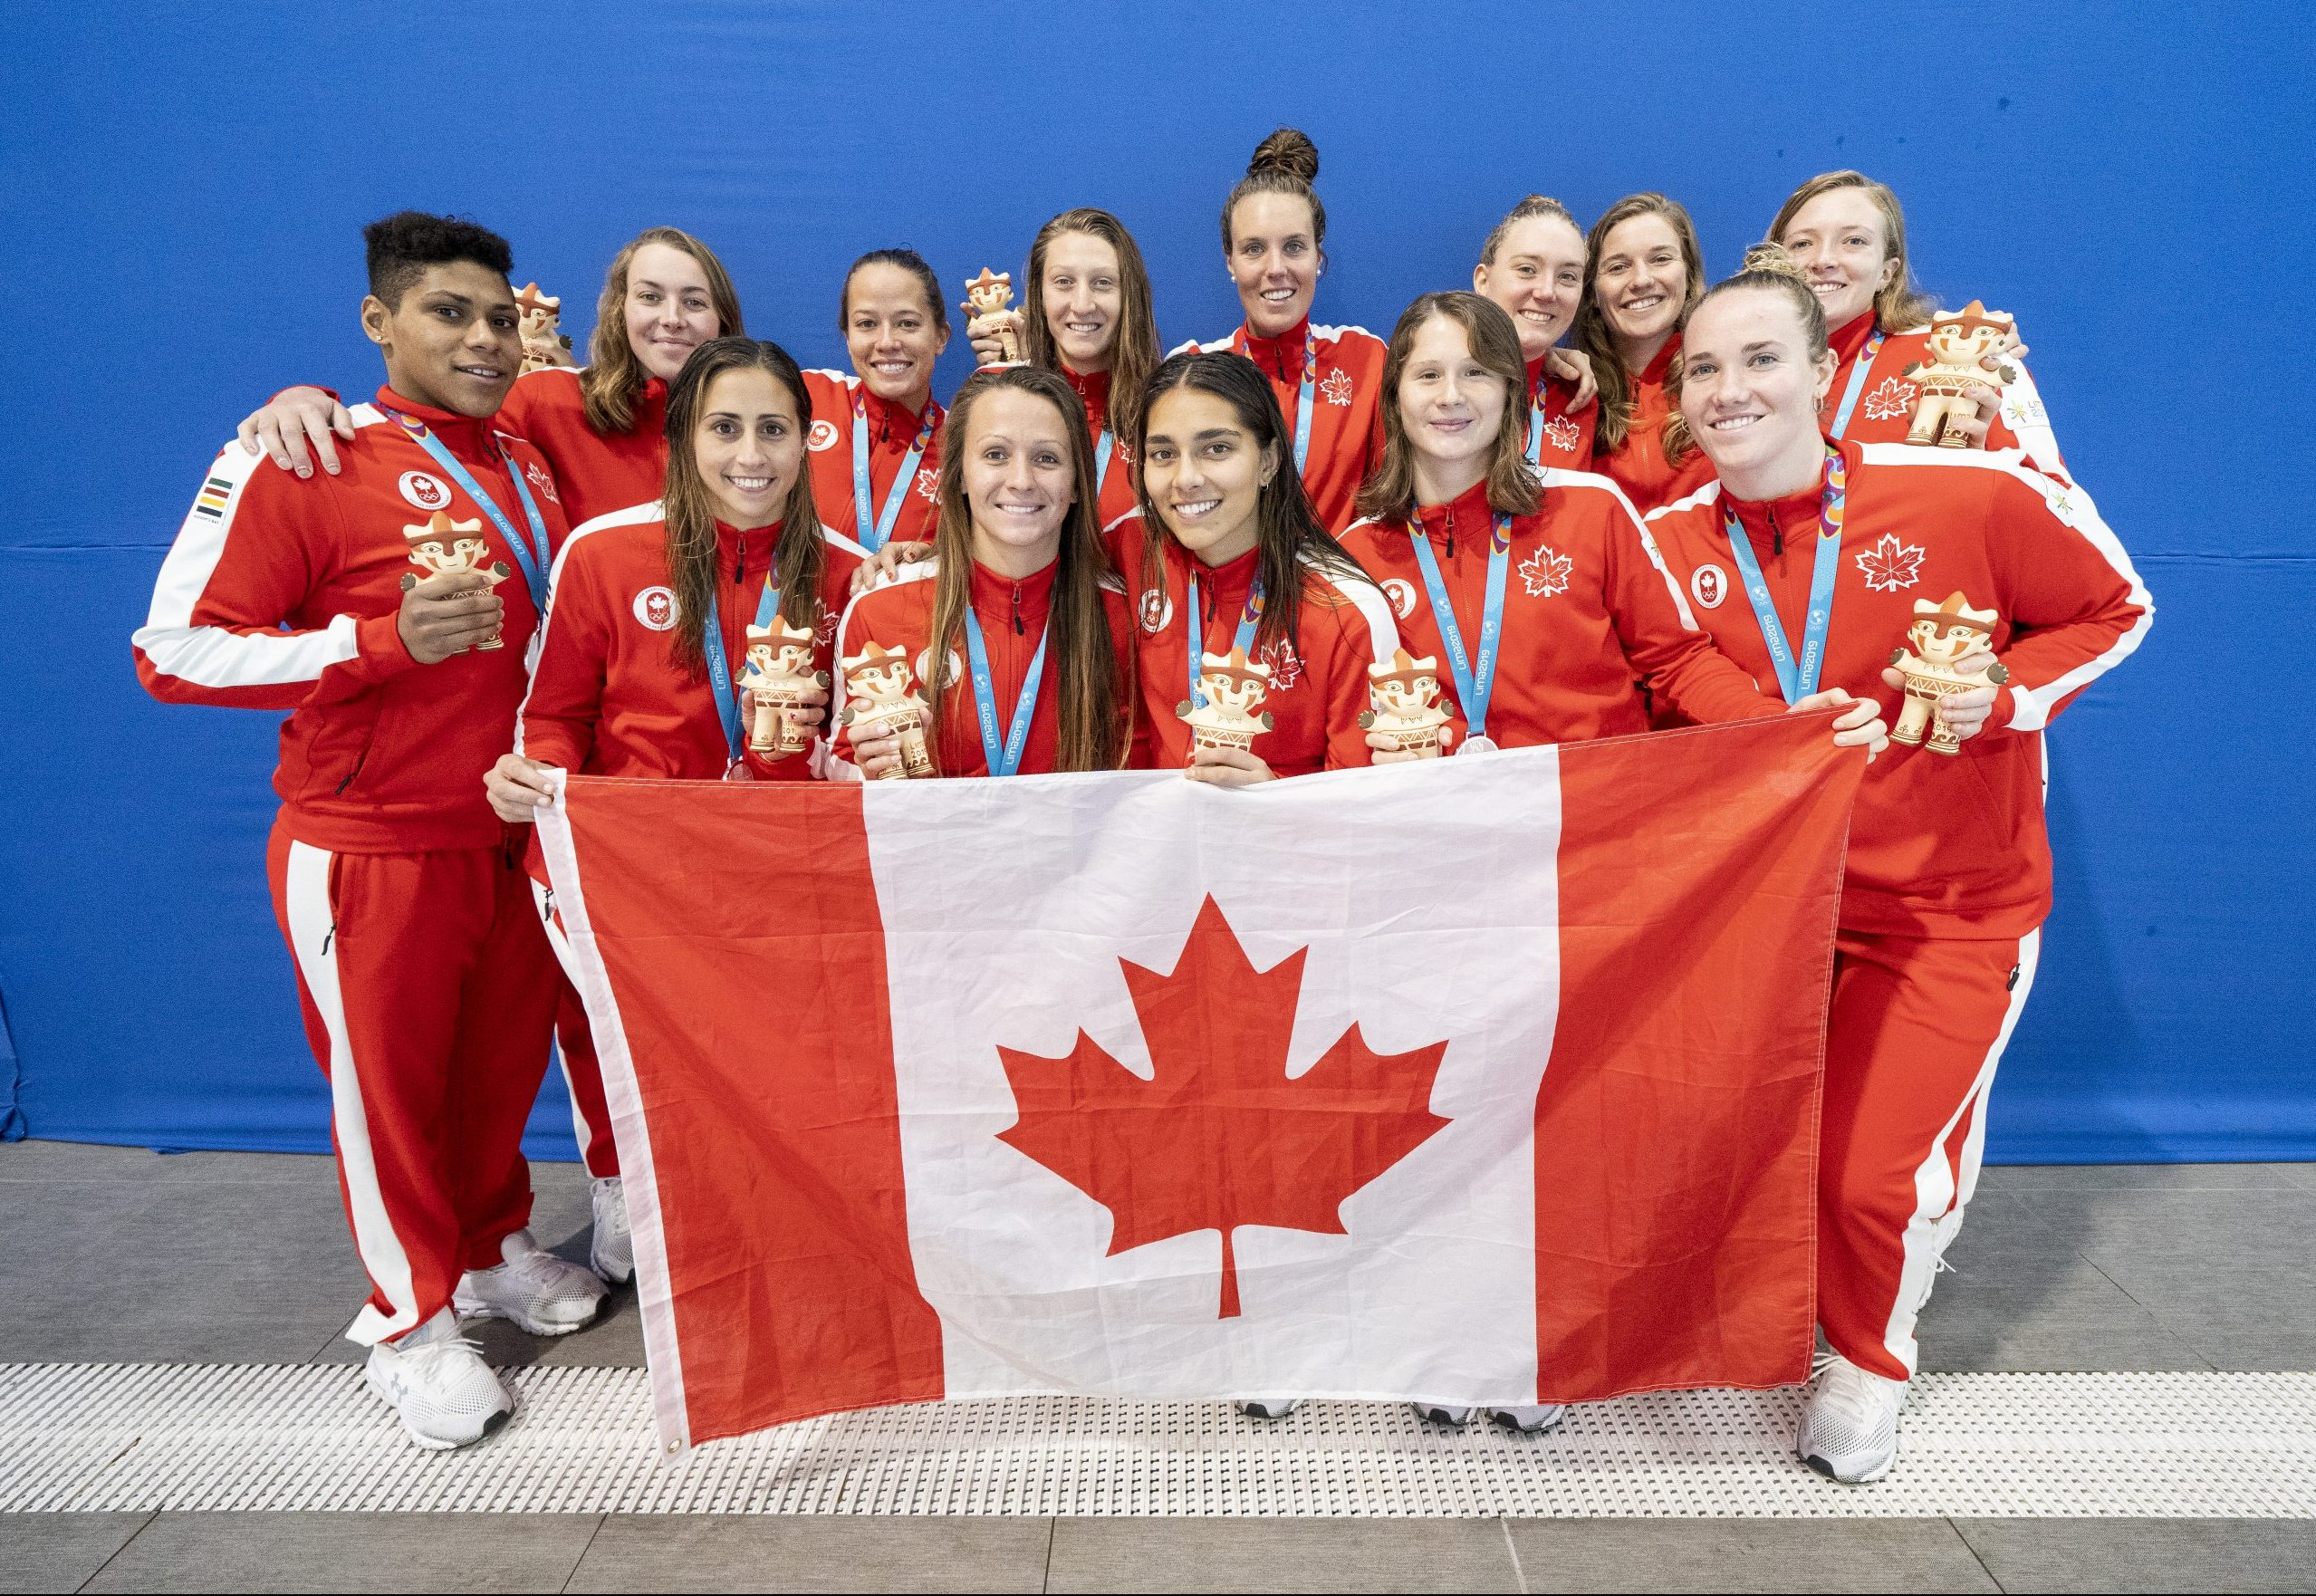 Canada's women's water polo team posed with the Canadian flag